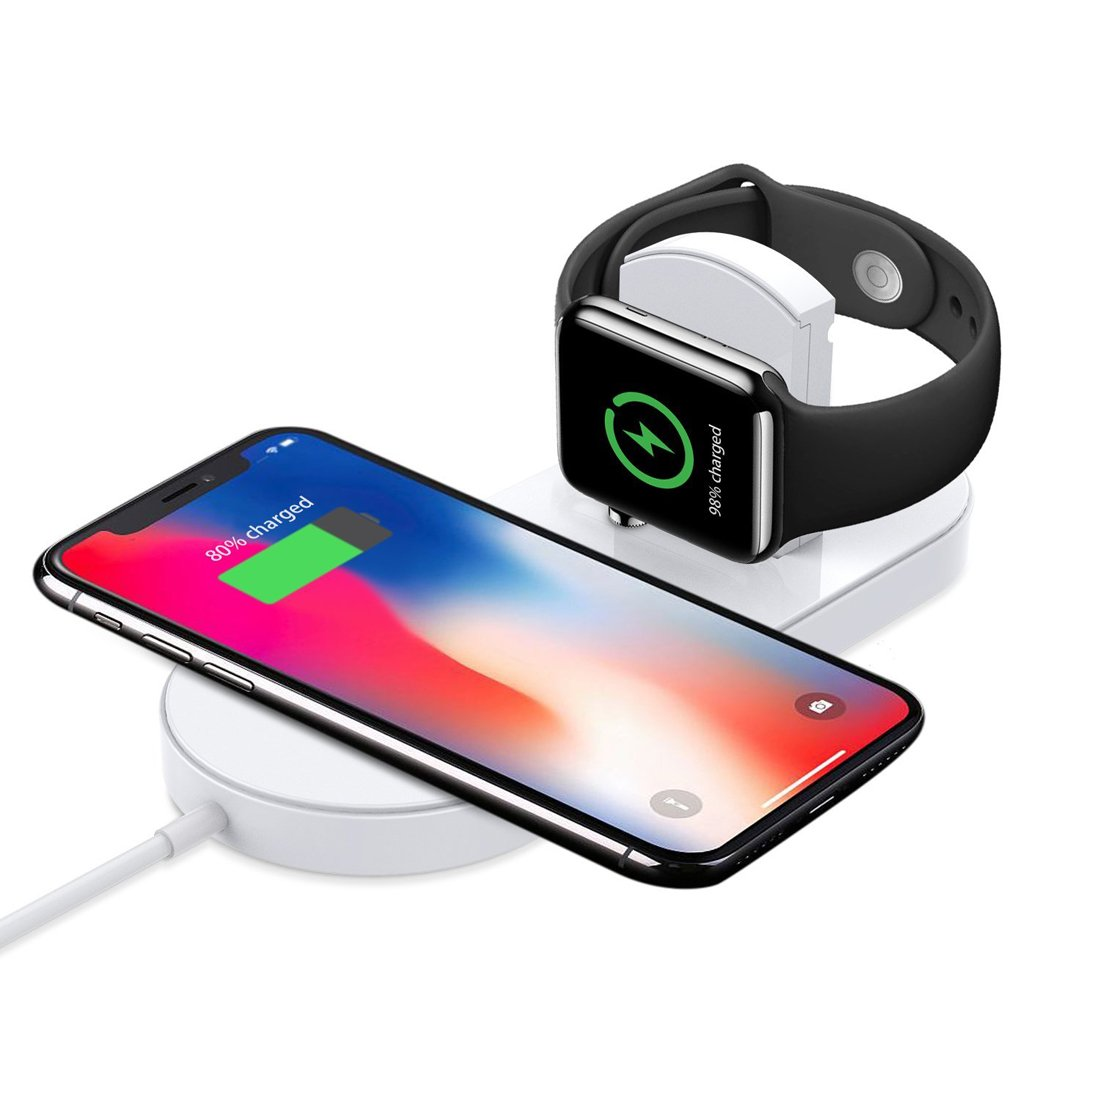 TEEMADE Wireless Charger for iPhone X/8/8 Plus,Apple Watch Series 1/2/3,7.5W/10W Charger Stand for iPhone/Samsung S9/8/8,9 Plus, Note 8,2W Charger Stand for Watch and 5W for All Qi Enable Models